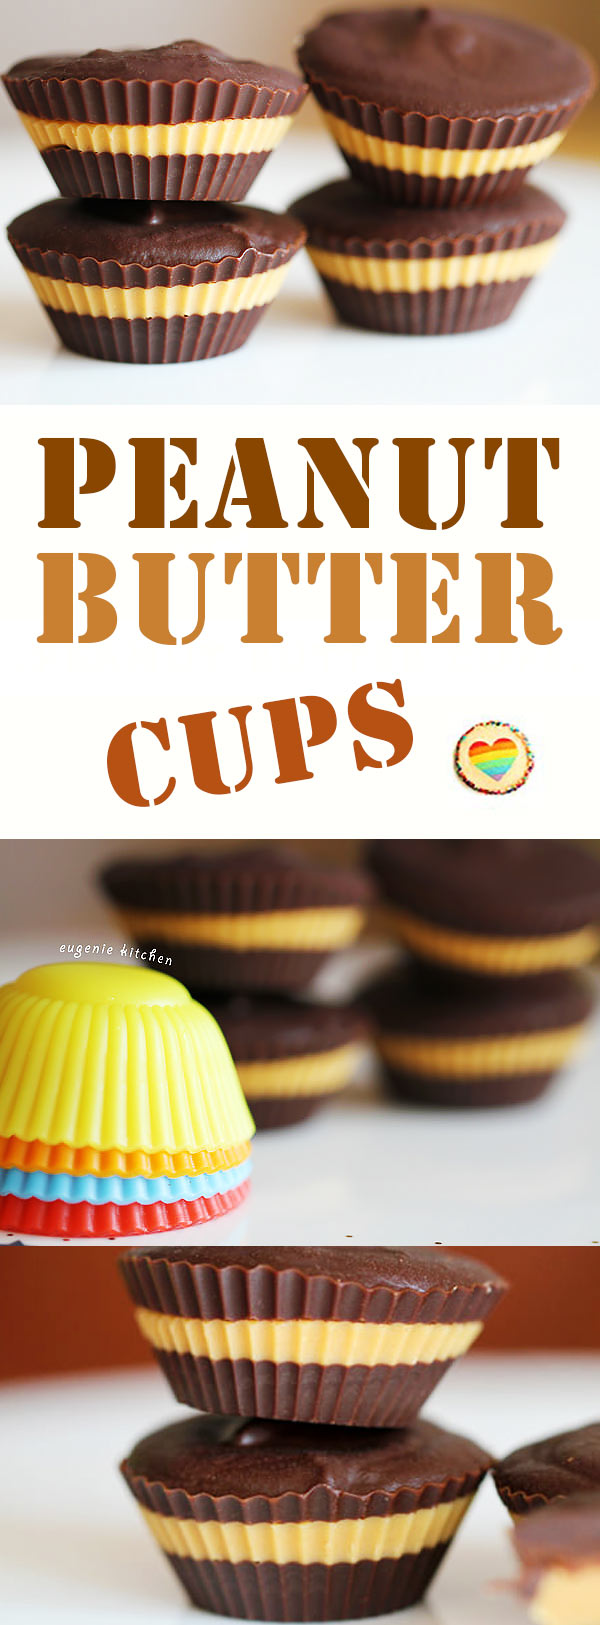 No-Bake Reese's Peanut Butter Chocolate Cups Recipe. Scrumptious! Ready in 30 minutes with everyday ingredients. - Eugenie Kitchen